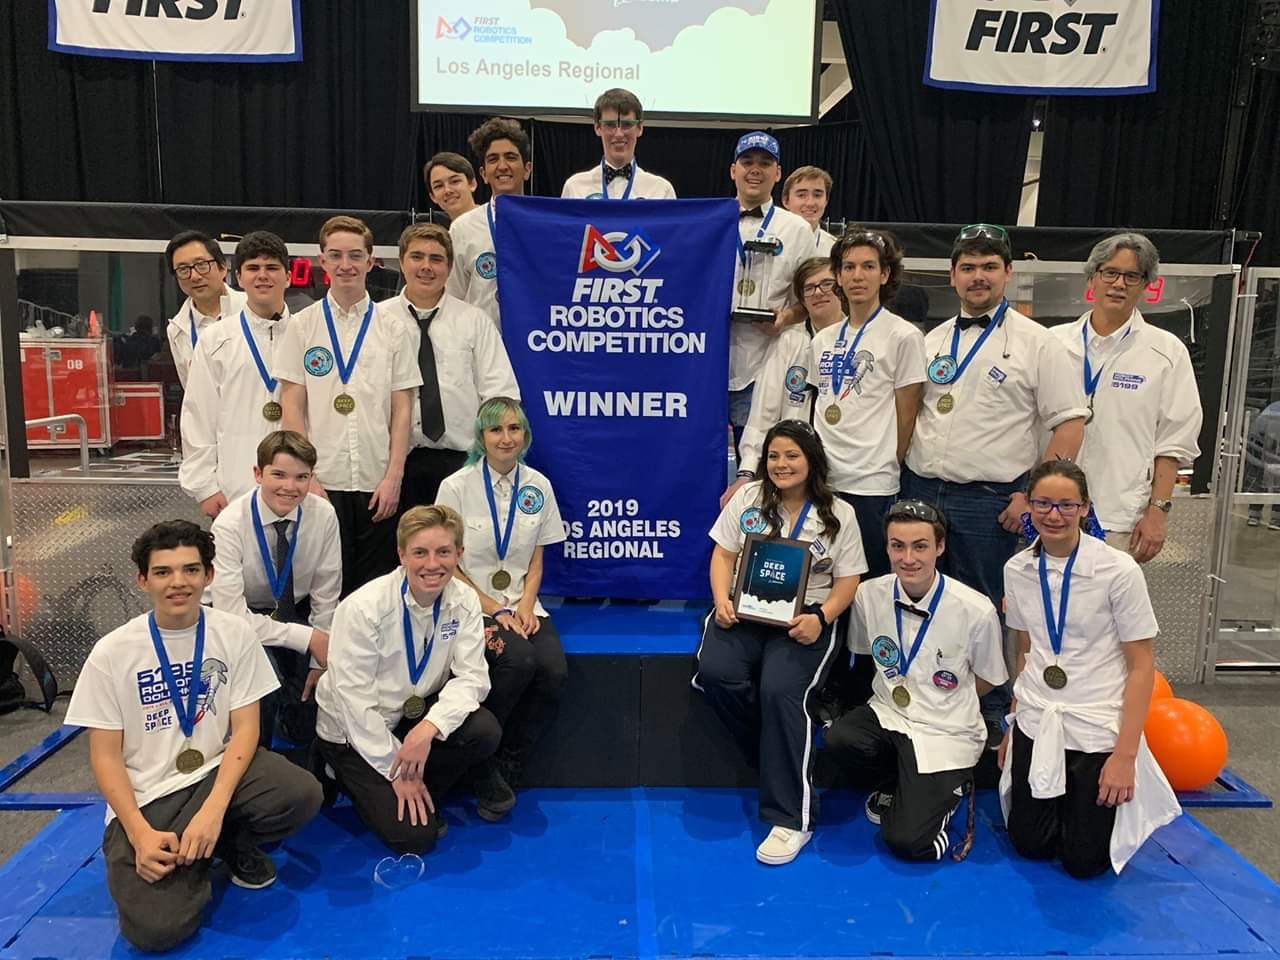 Capistrano Unified's Districtwide Robotics Team 5199 (Robot Dolphins from Outer Space) recently qualified for the Robotics World Championship in Houston, Texas, along with winning first place at the Los Angeles Regionals FIRST Robotics Competition. Photo: Courtesy of Capistrano Unified School District